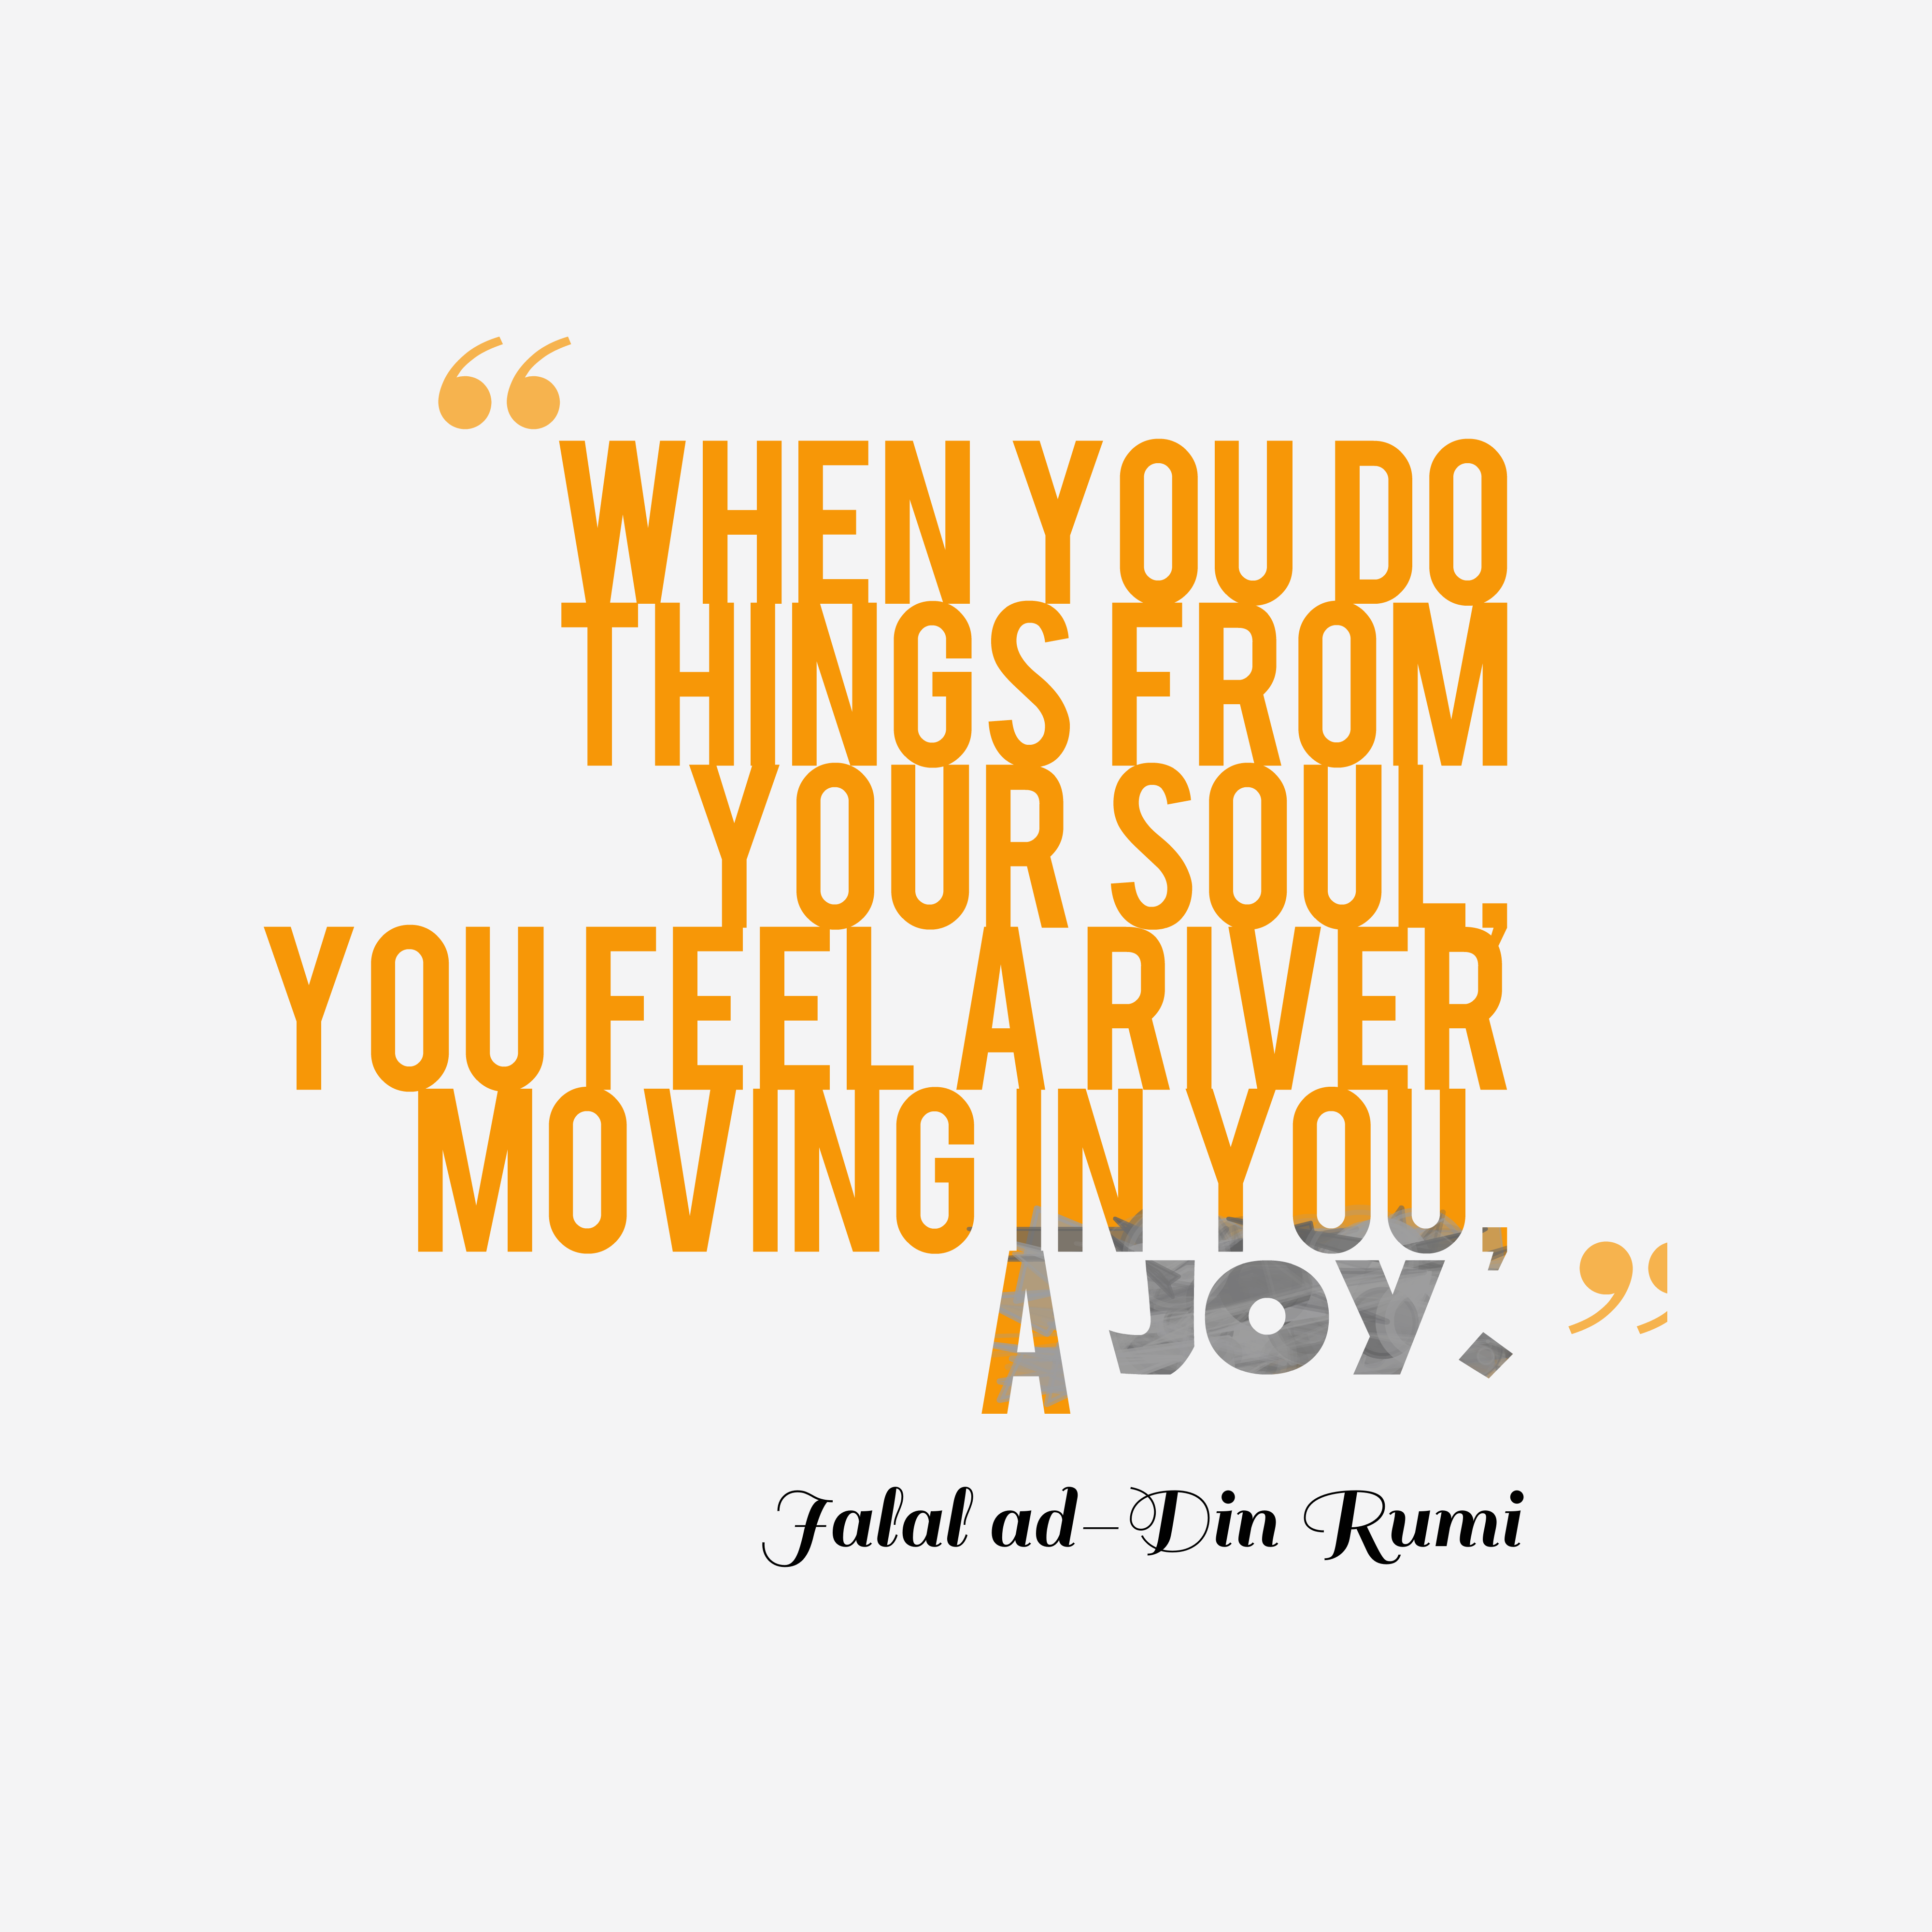 Jalal Ad Din Rumi Quote About Joy